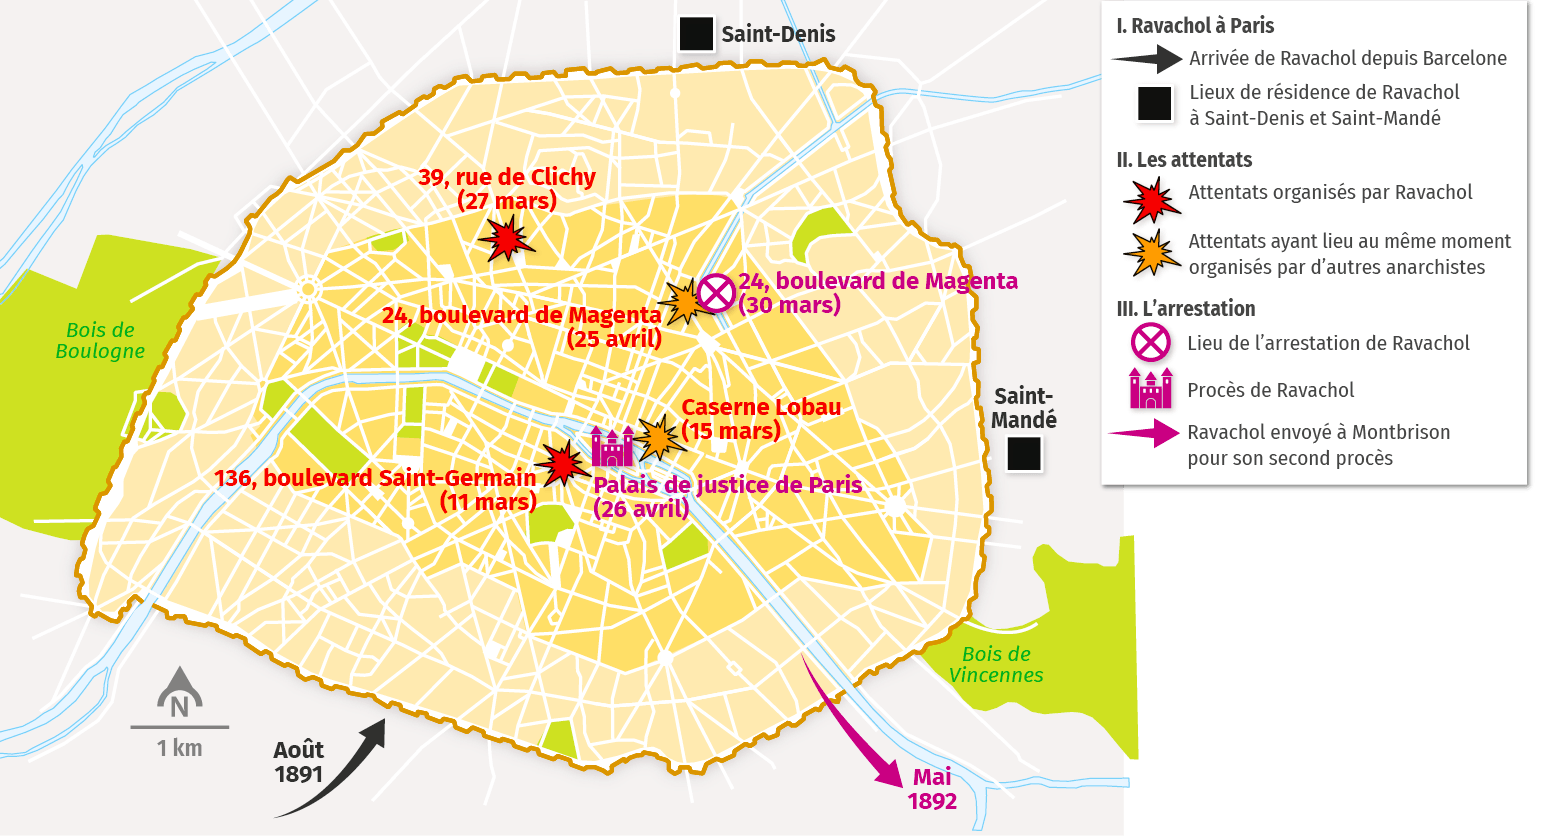 carte Ravachol à Paris